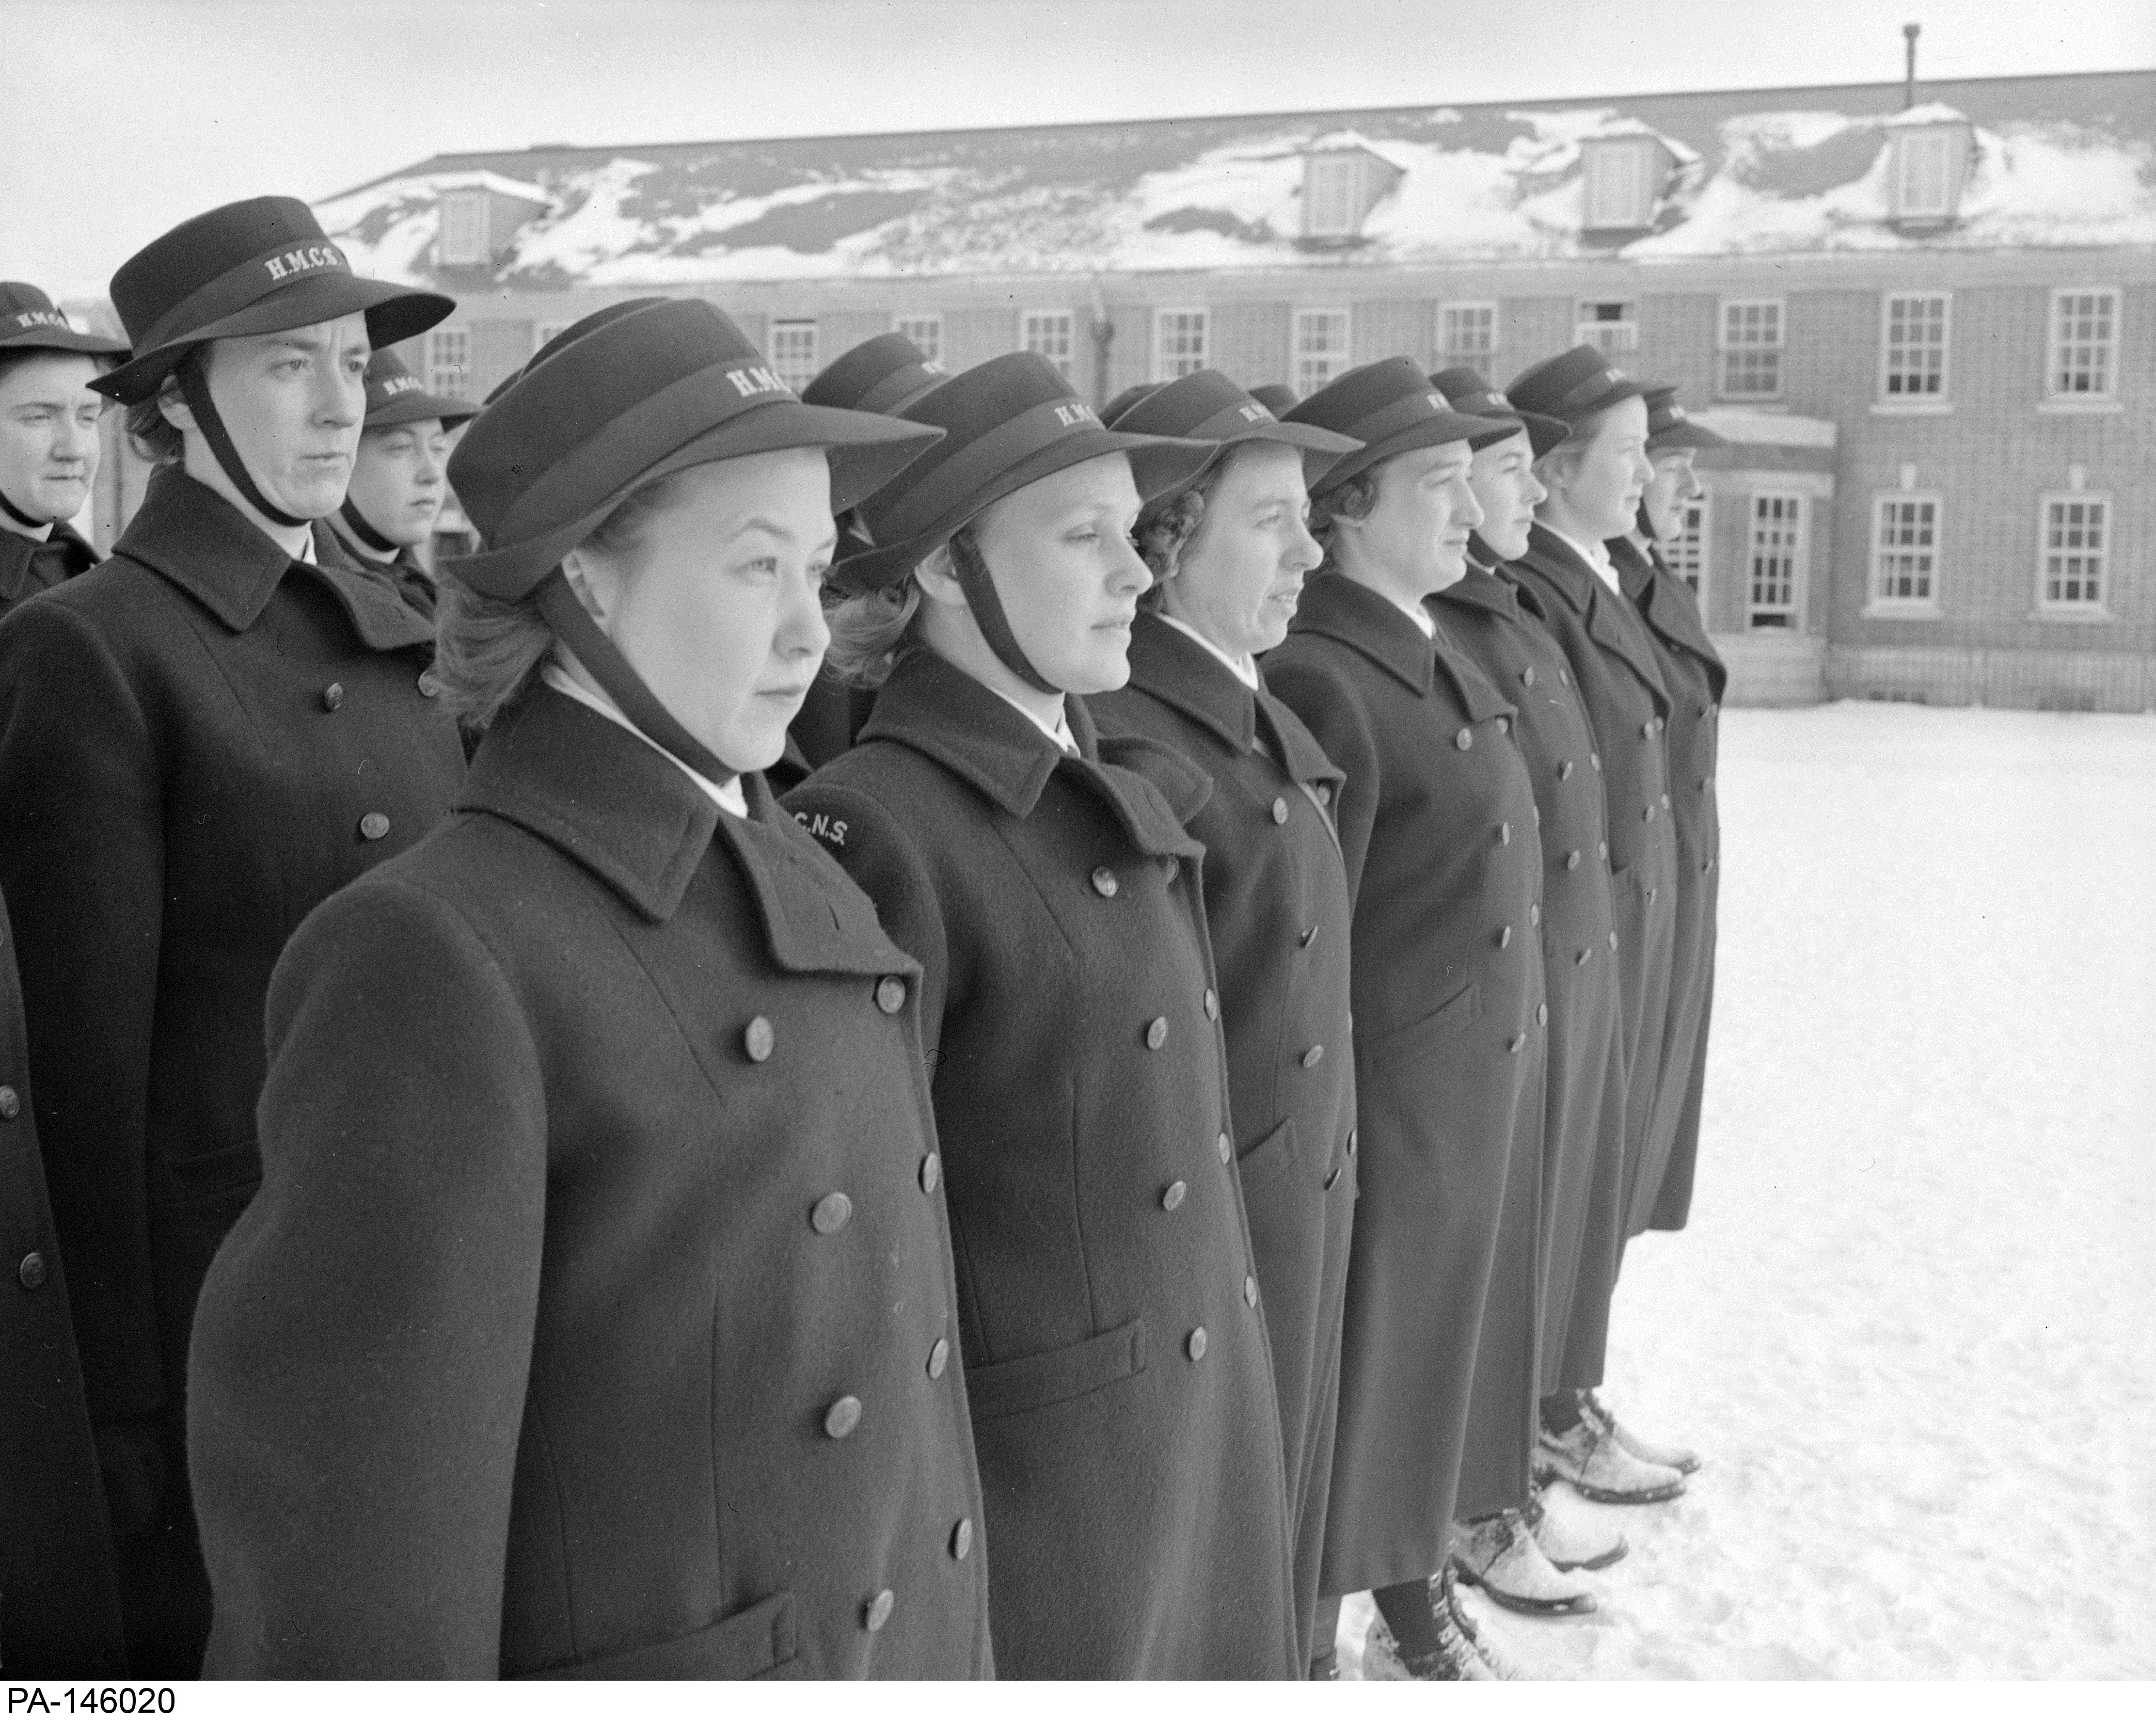 Women's Royal Canadian Naval Service (WRCNS)